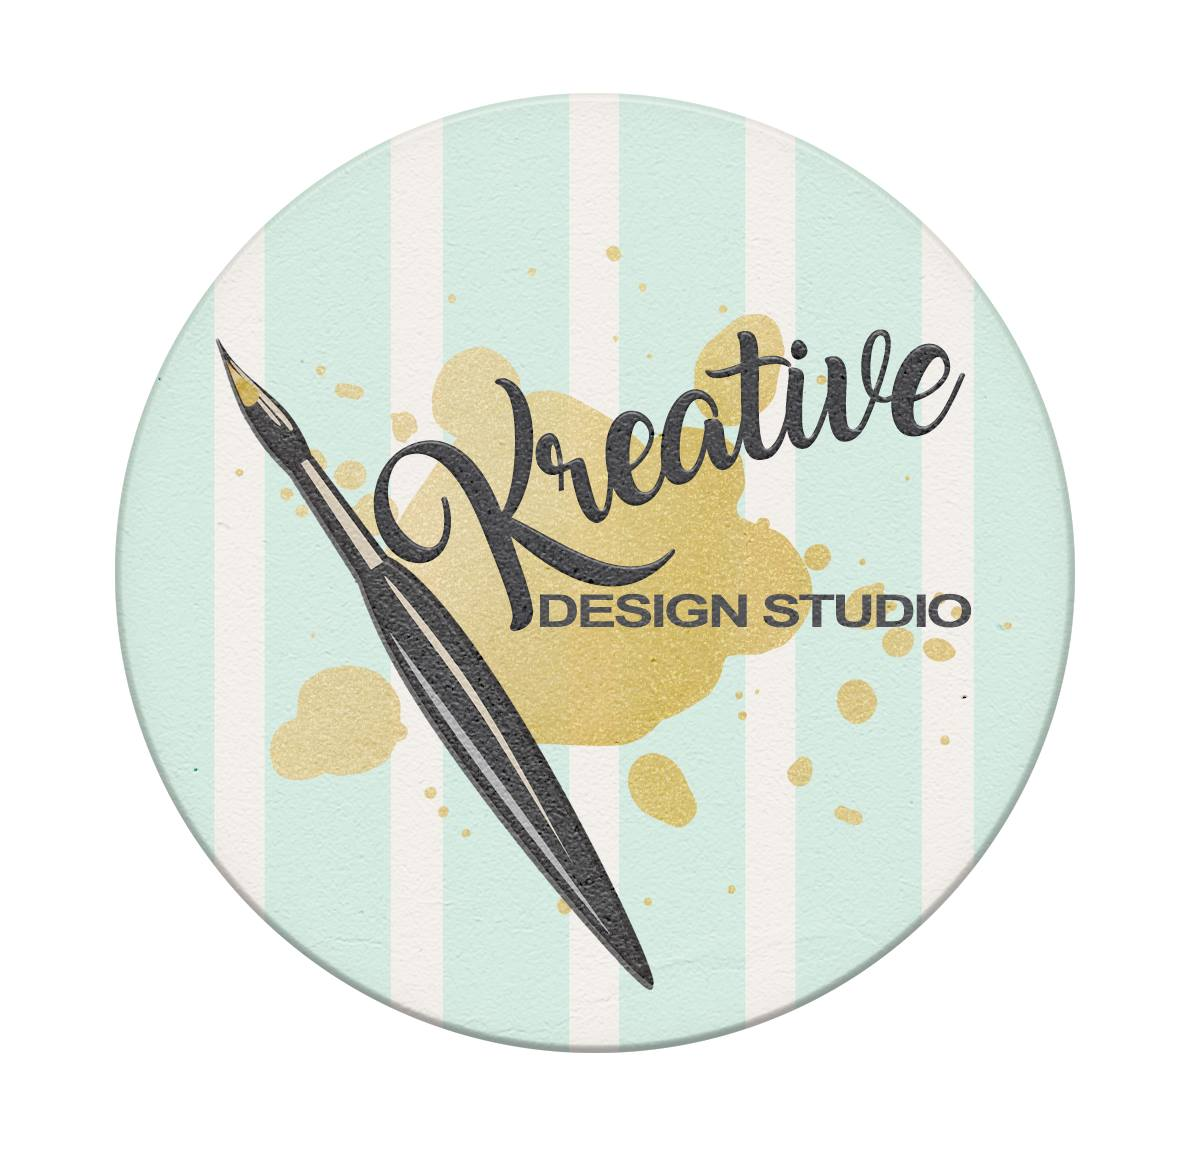 Kreative Design Studio